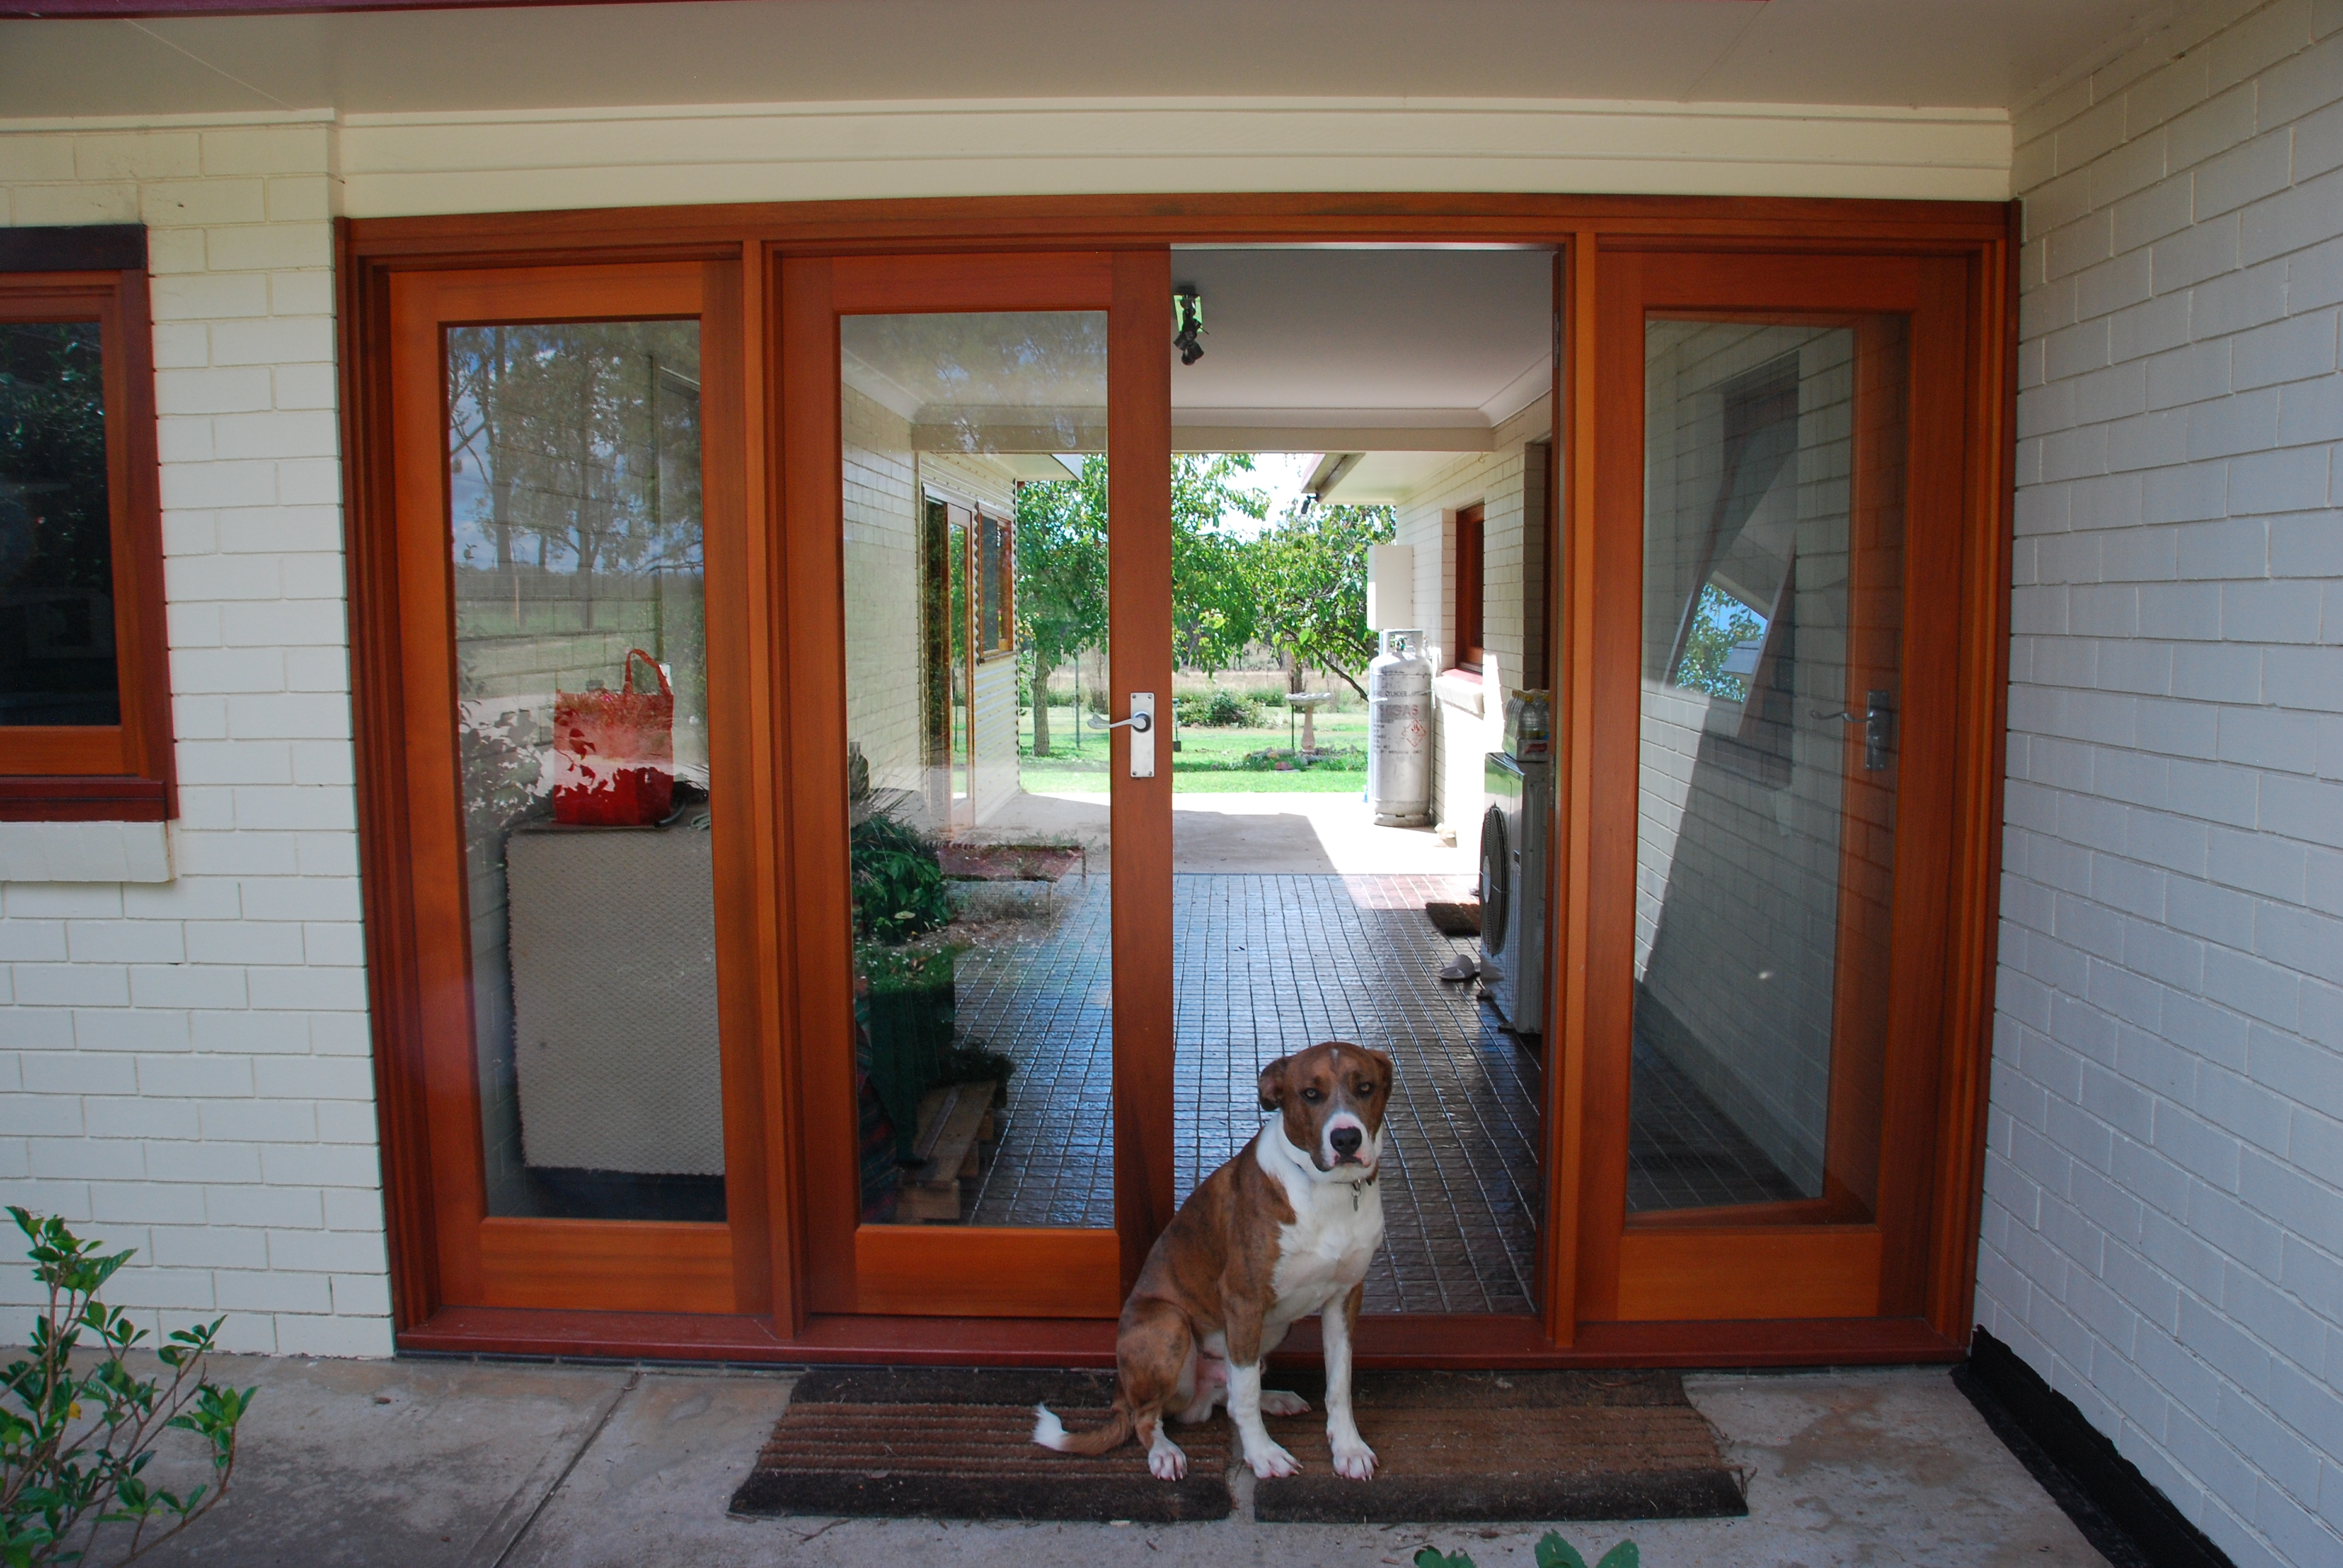 2592 #6F3019 French Doors With Fixed Door Sidelights And Beautiful Dog wallpaper Doors And Sidelights 40353872